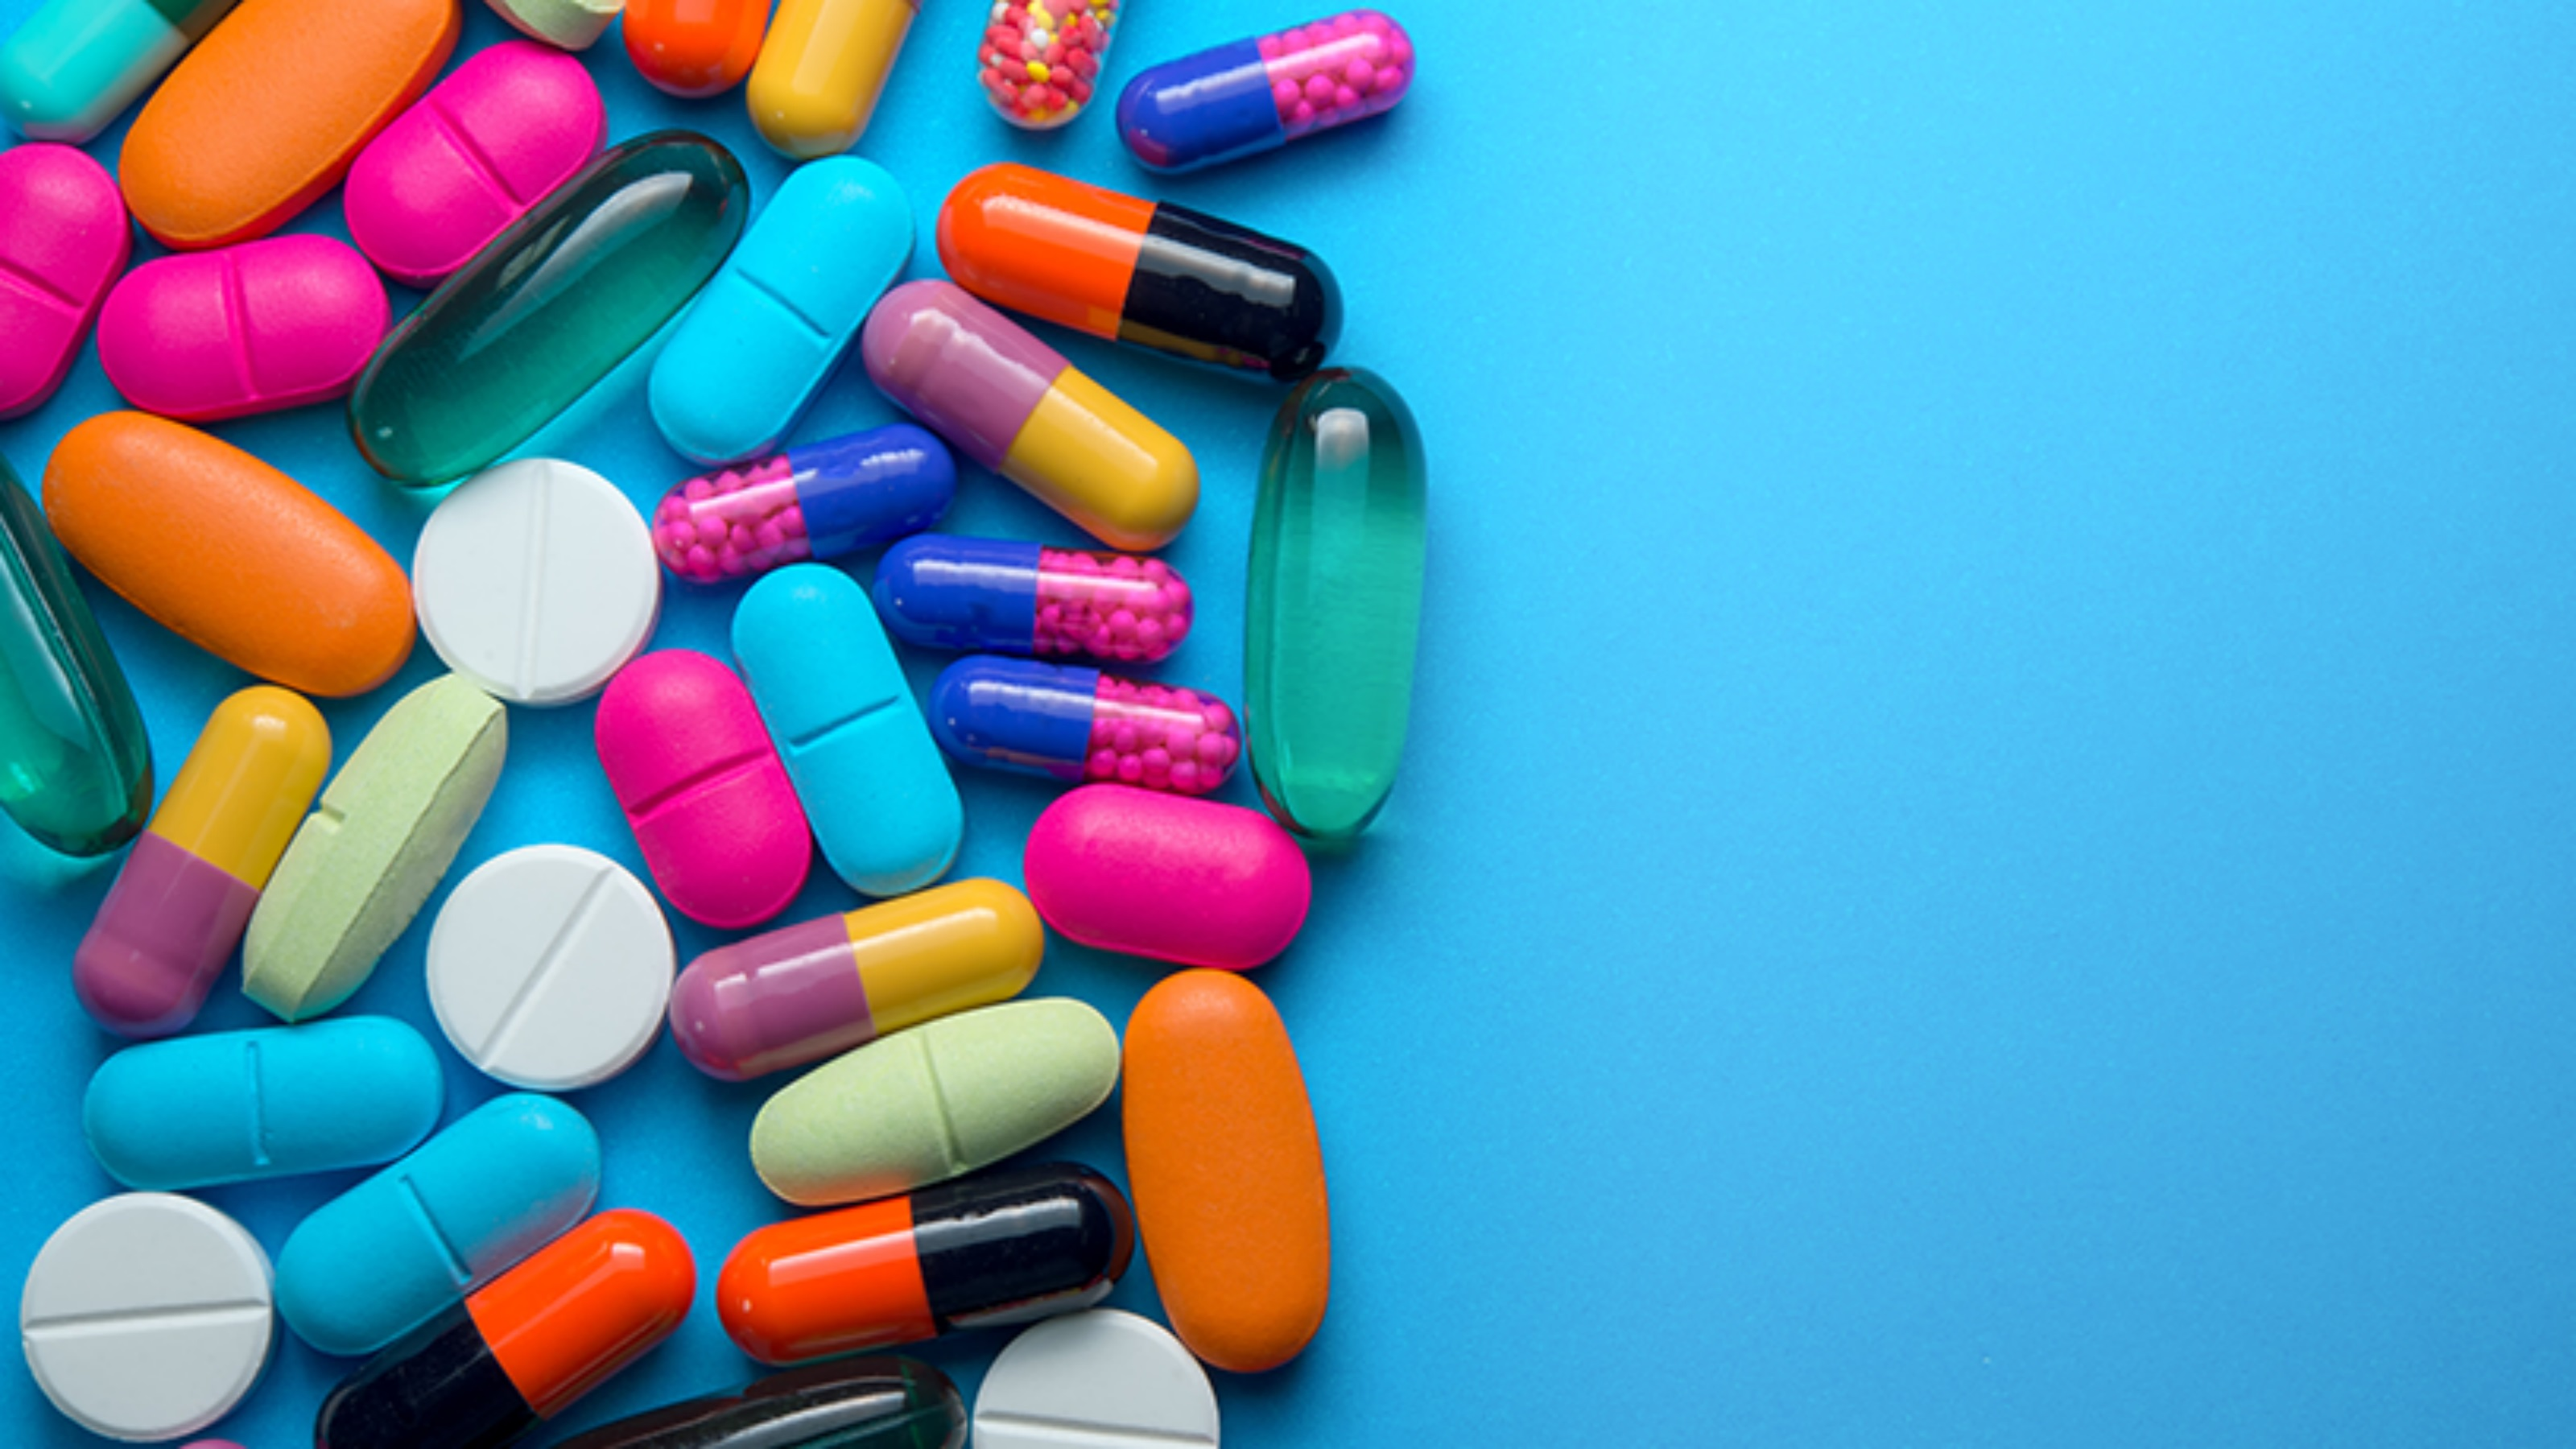 Picture of pills and medicine